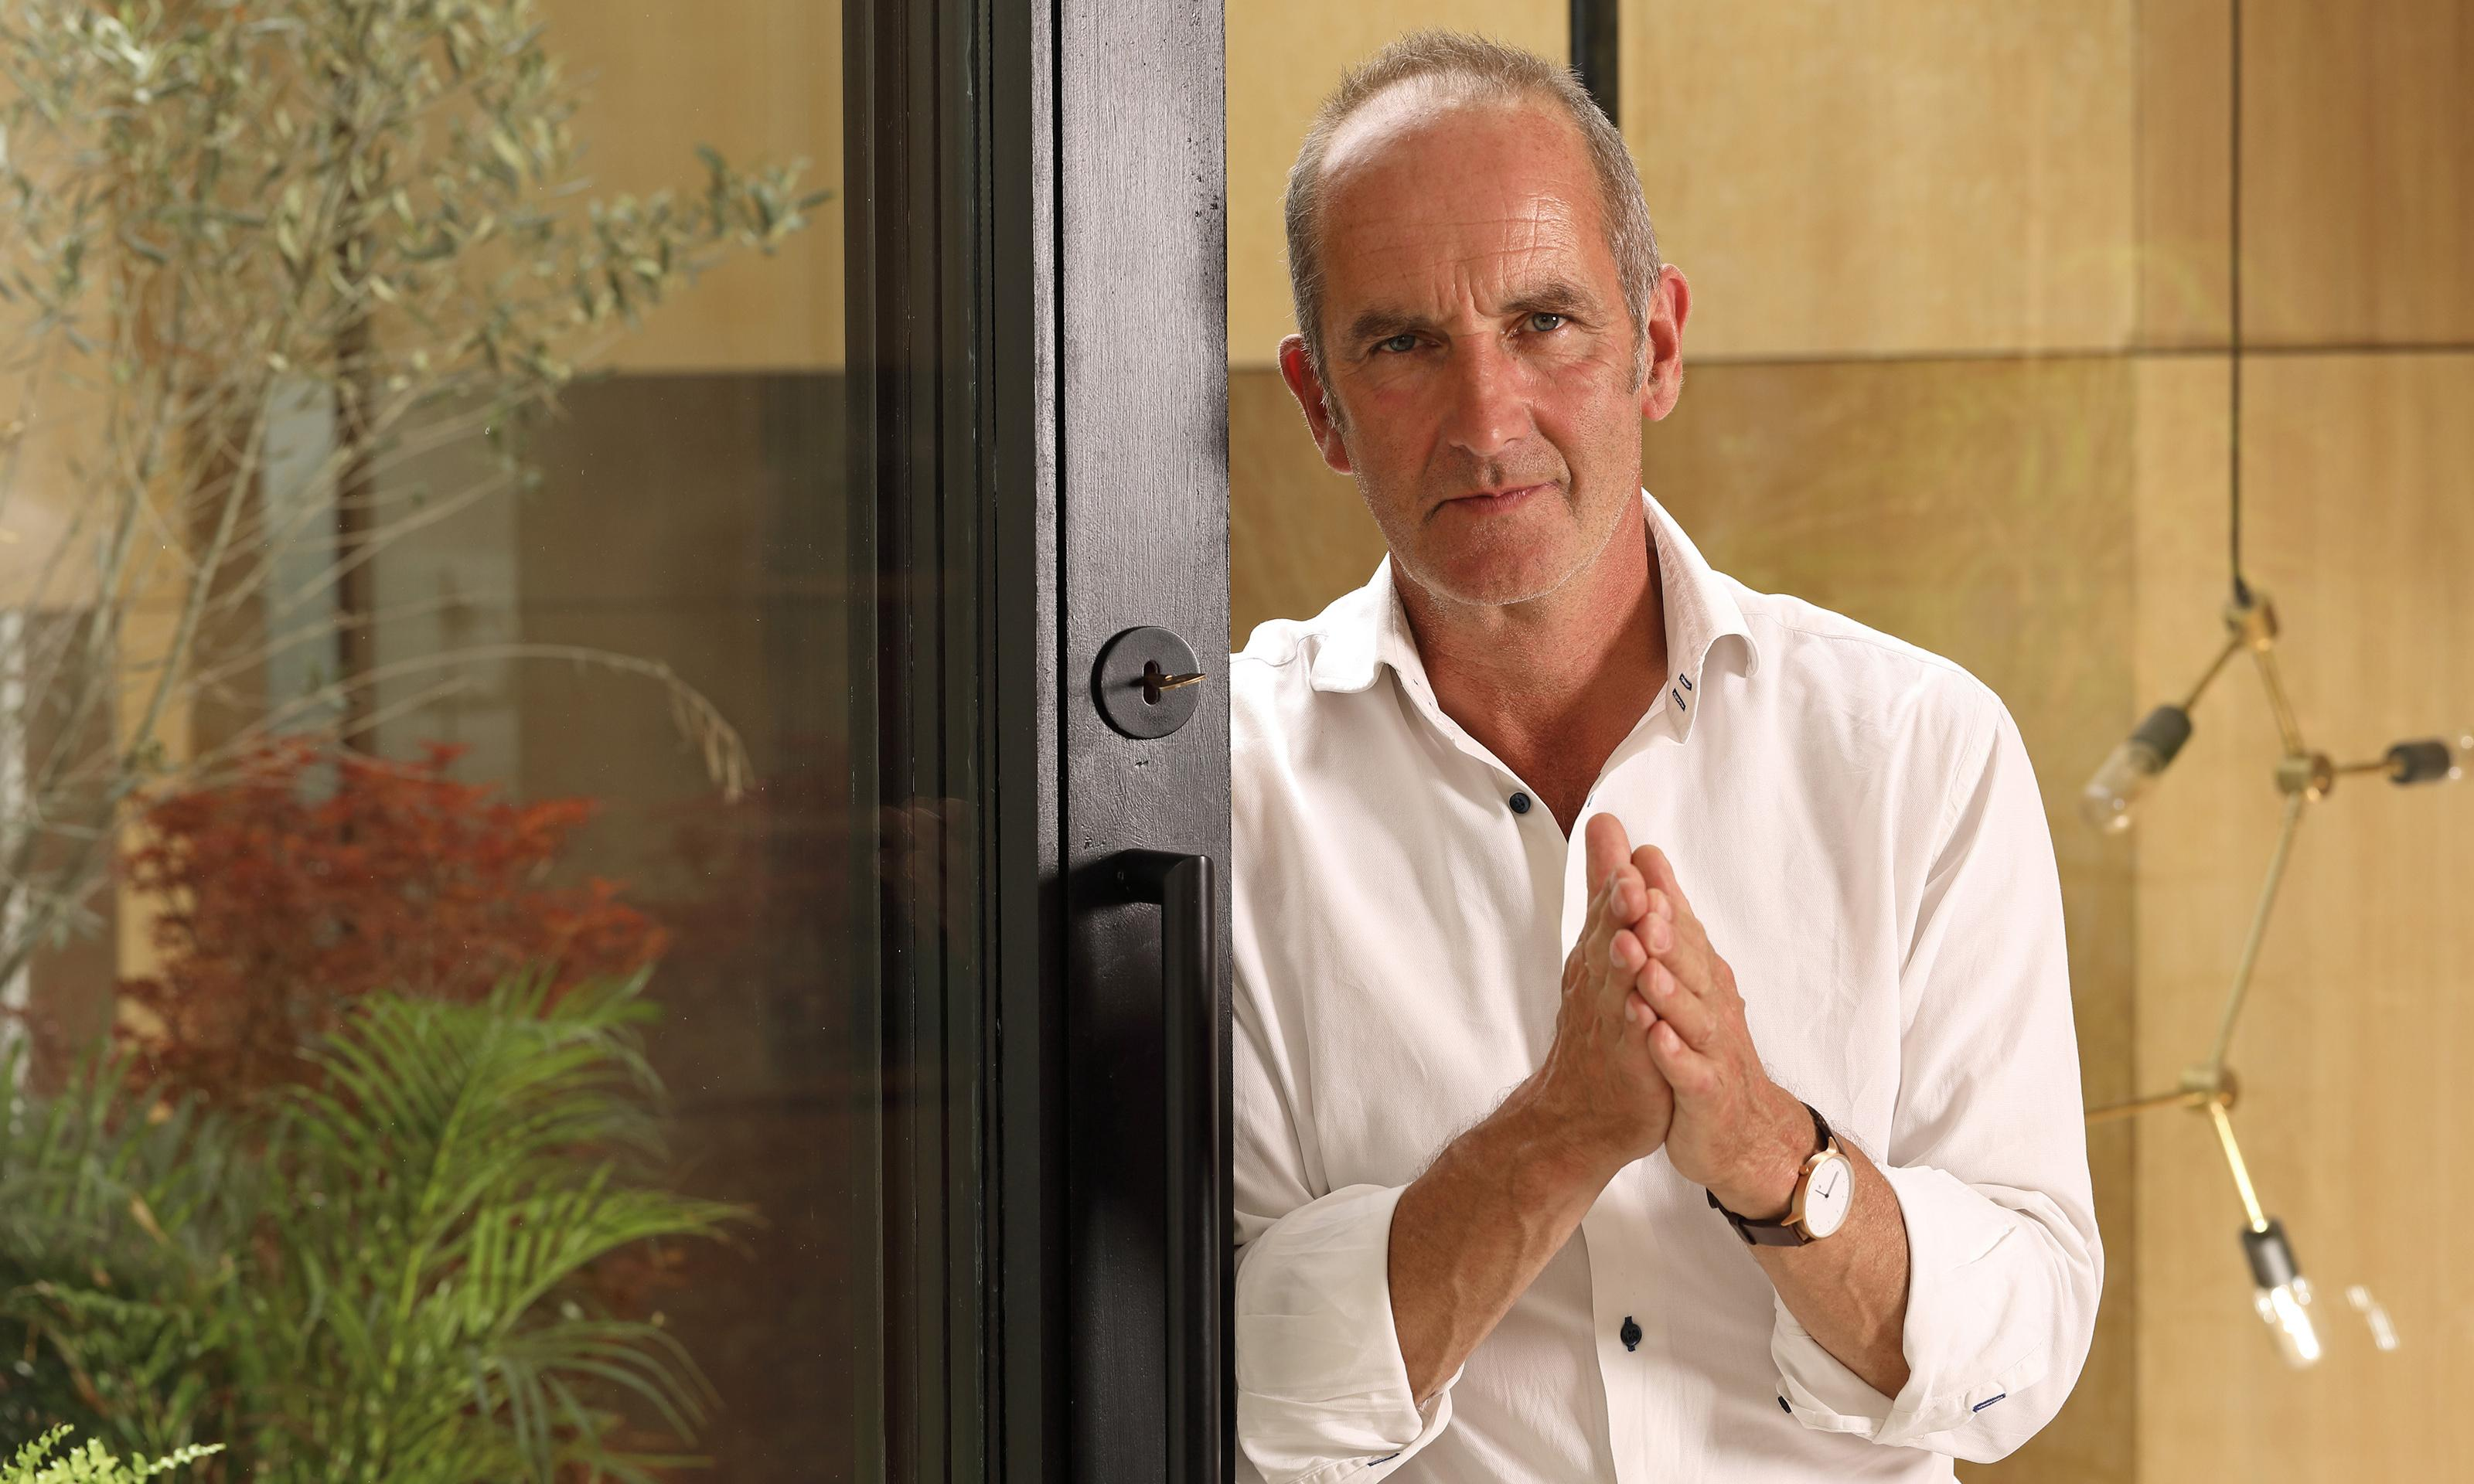 Kevin McCloud: TV presenter whose design for living turned sour